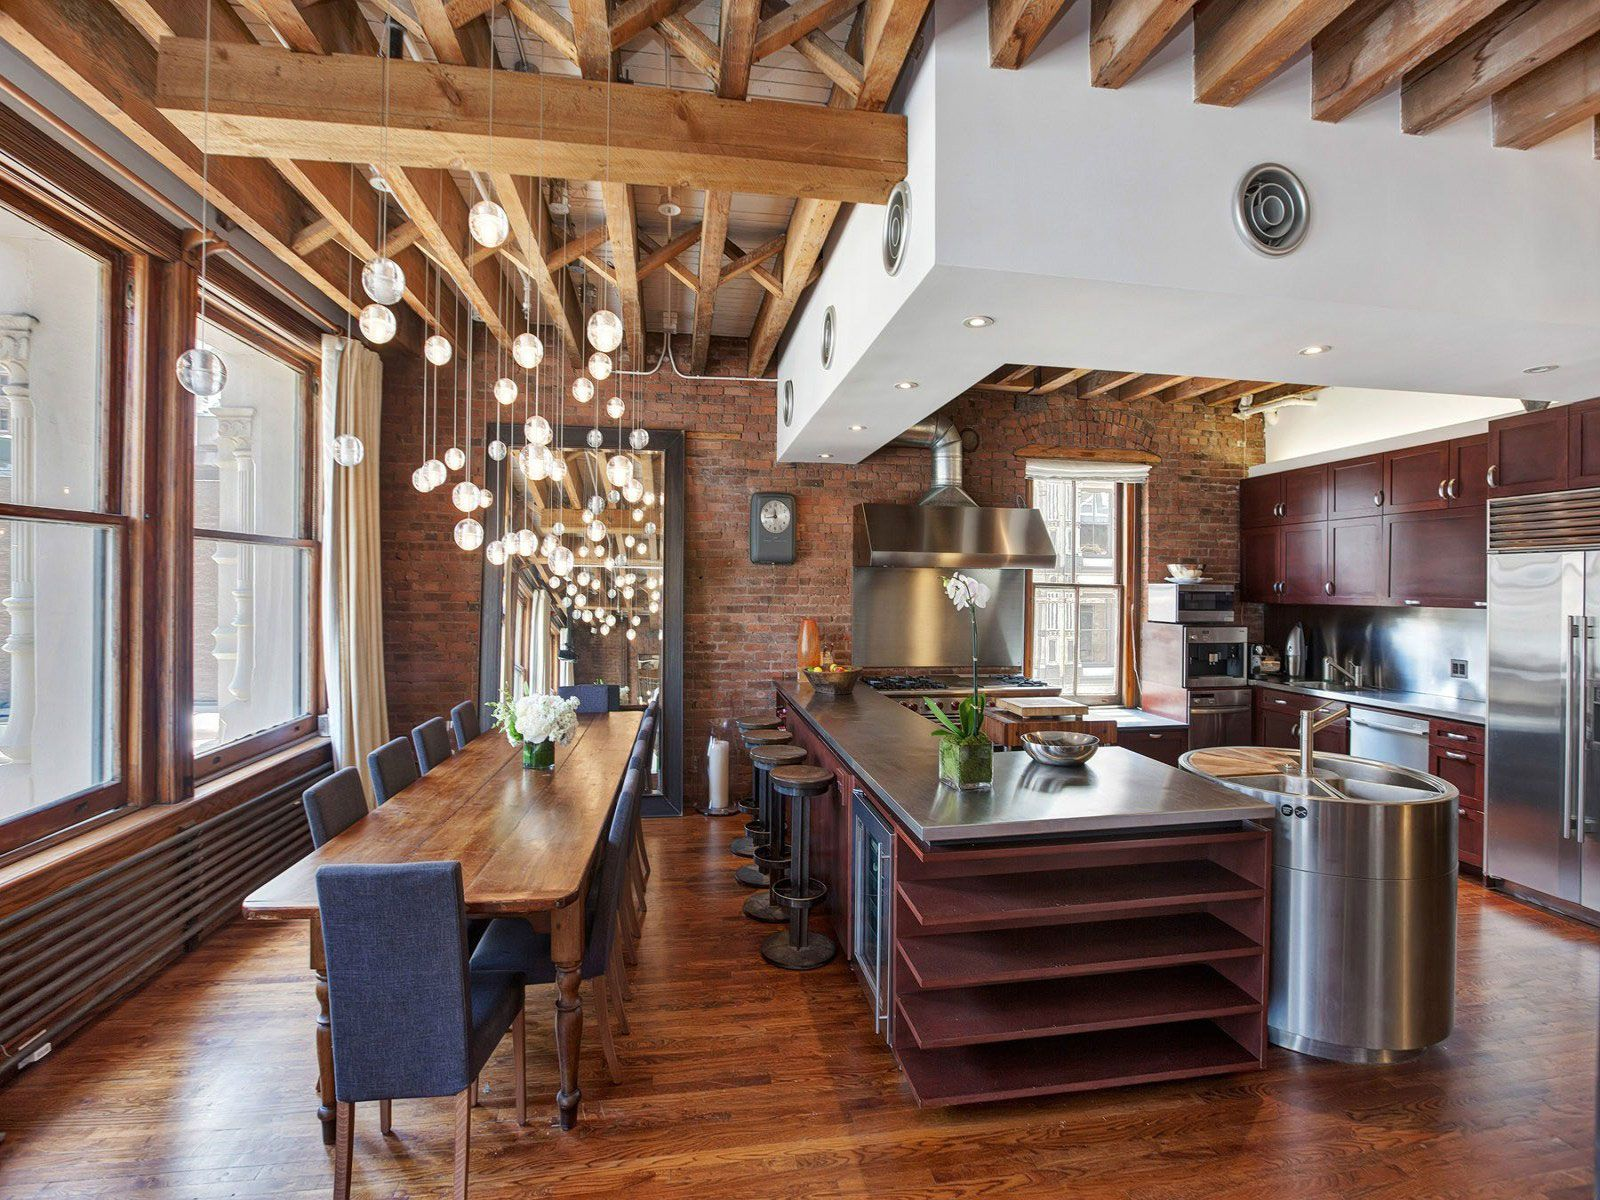 Ultimate Soho Exposed Brick And Wood Beams Loft On Prince